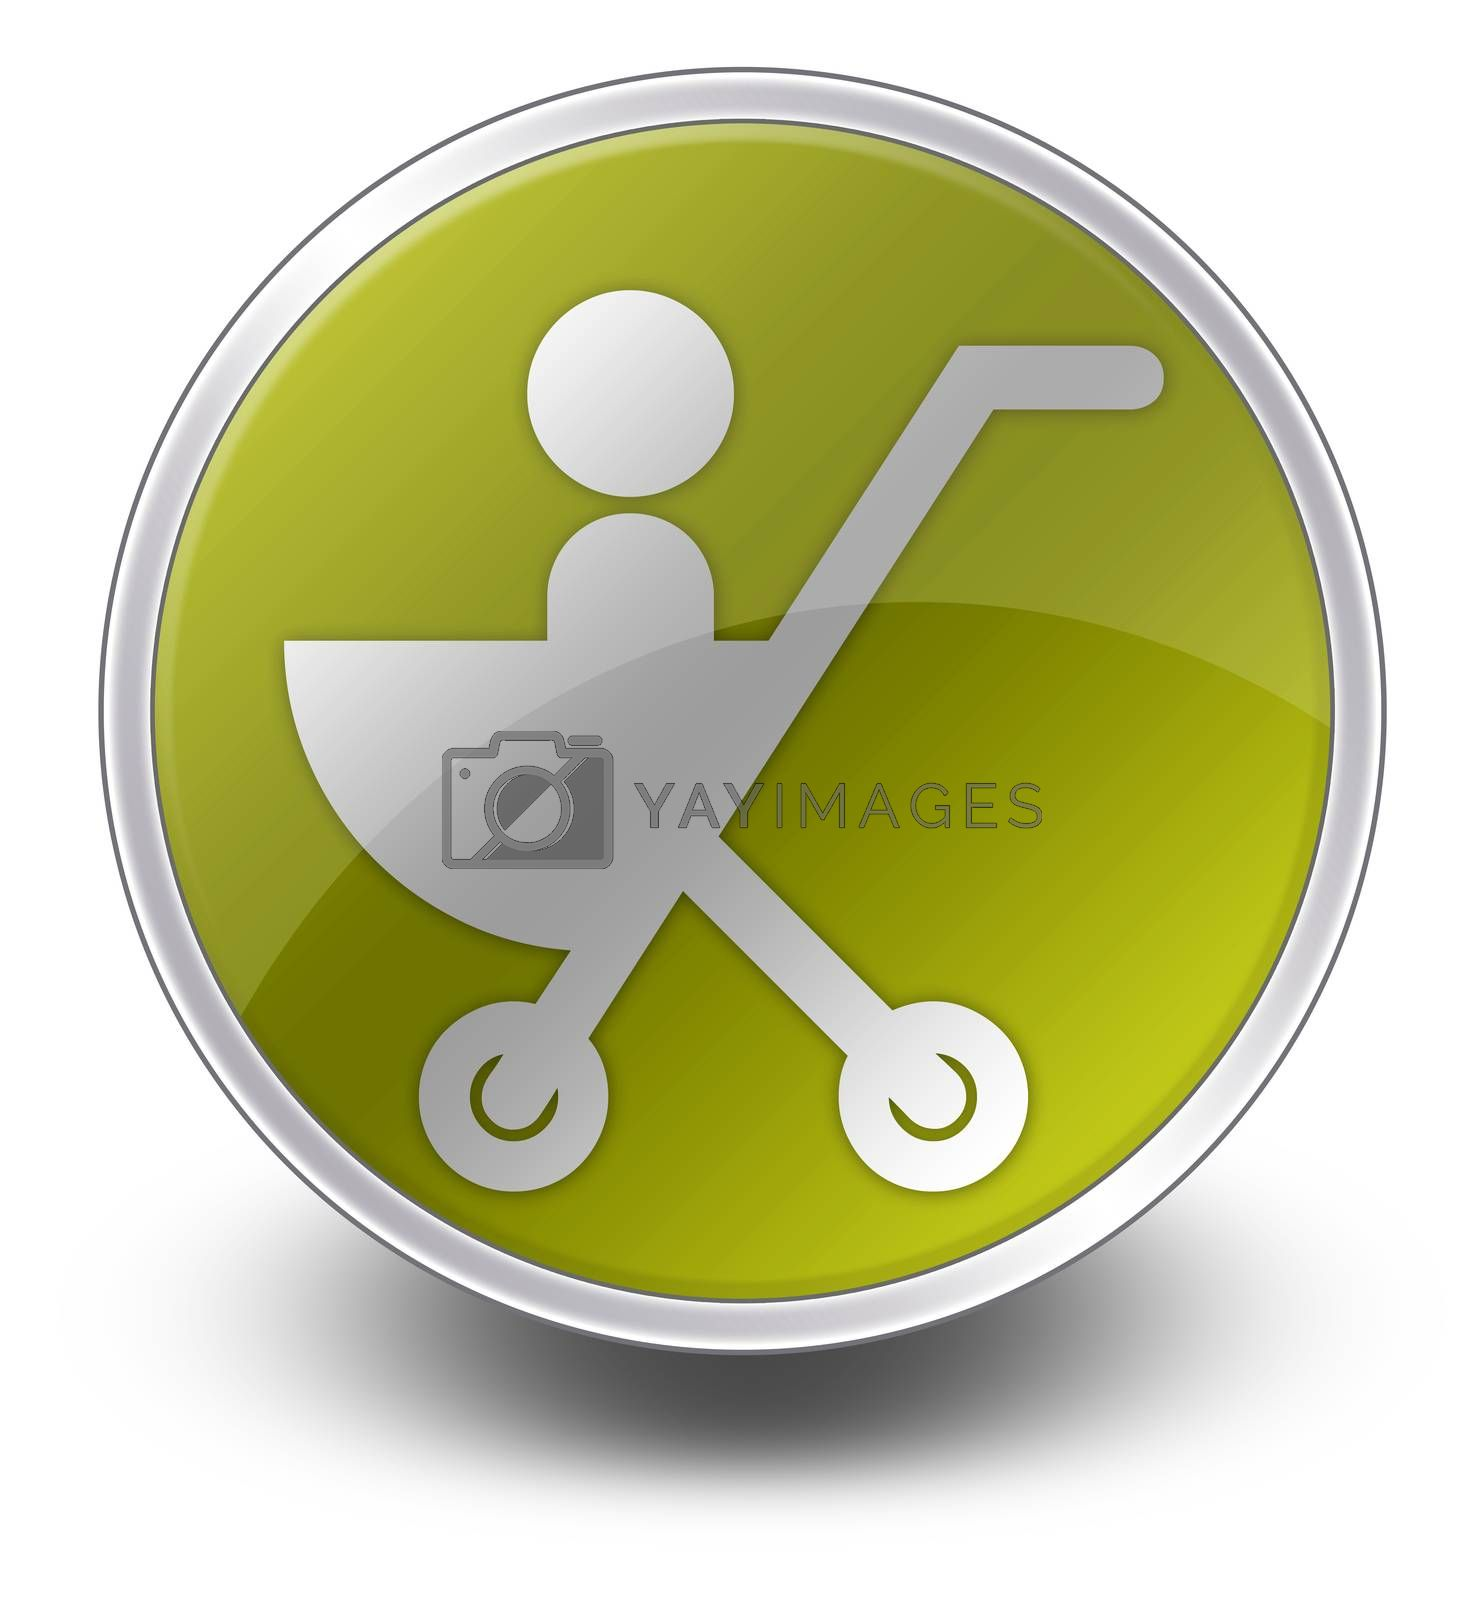 Icon, Button, Pictogram with Stroller symbol